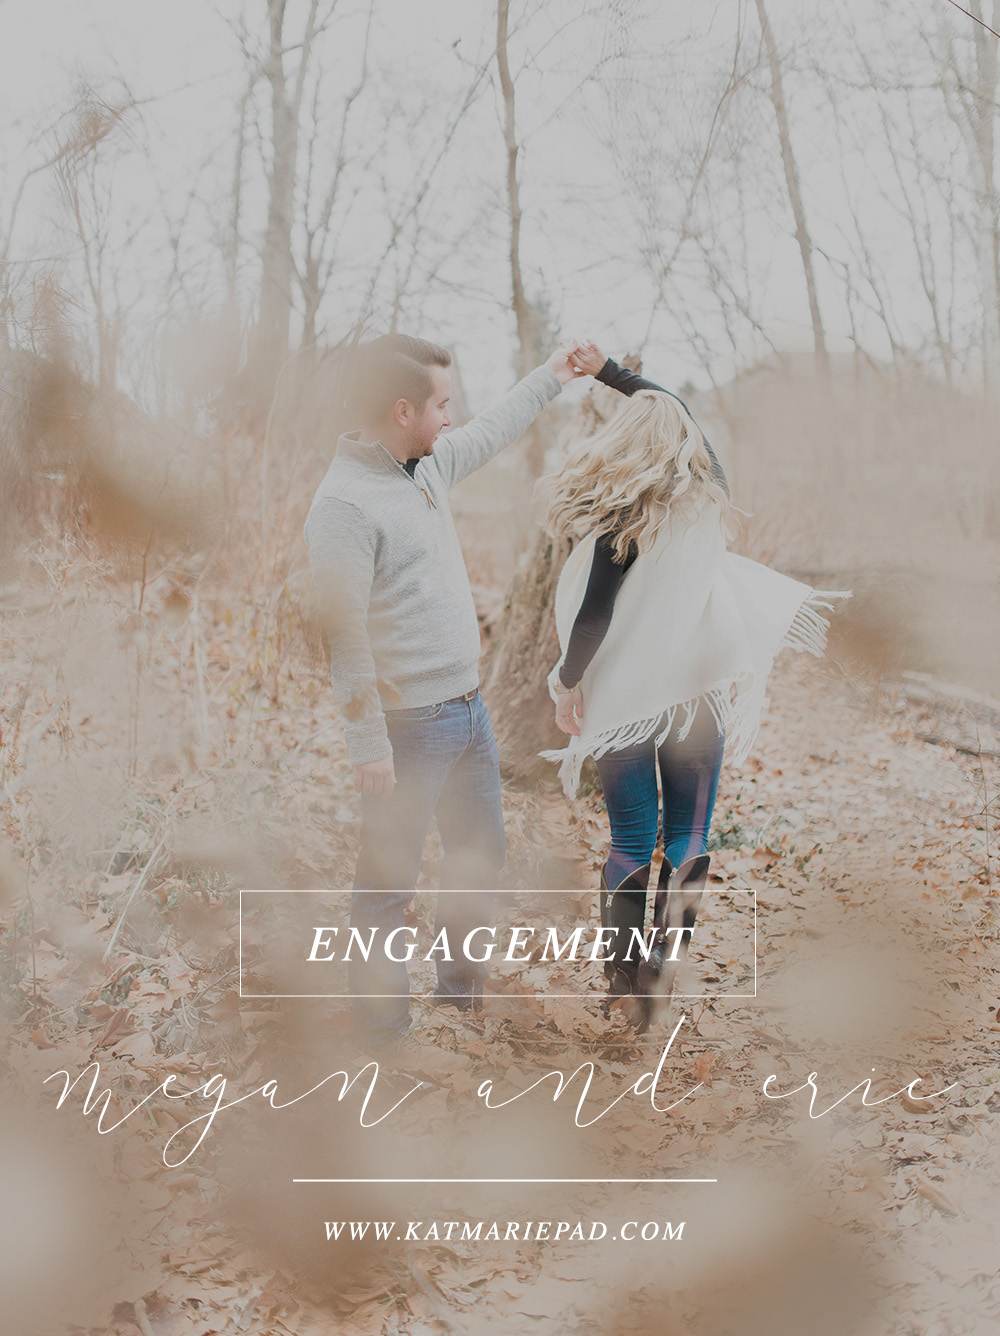 Premiere Indianapolis Indiana Engagement and Wedding Photographer - Katerina Marie Photography. Art. Designs. LLC